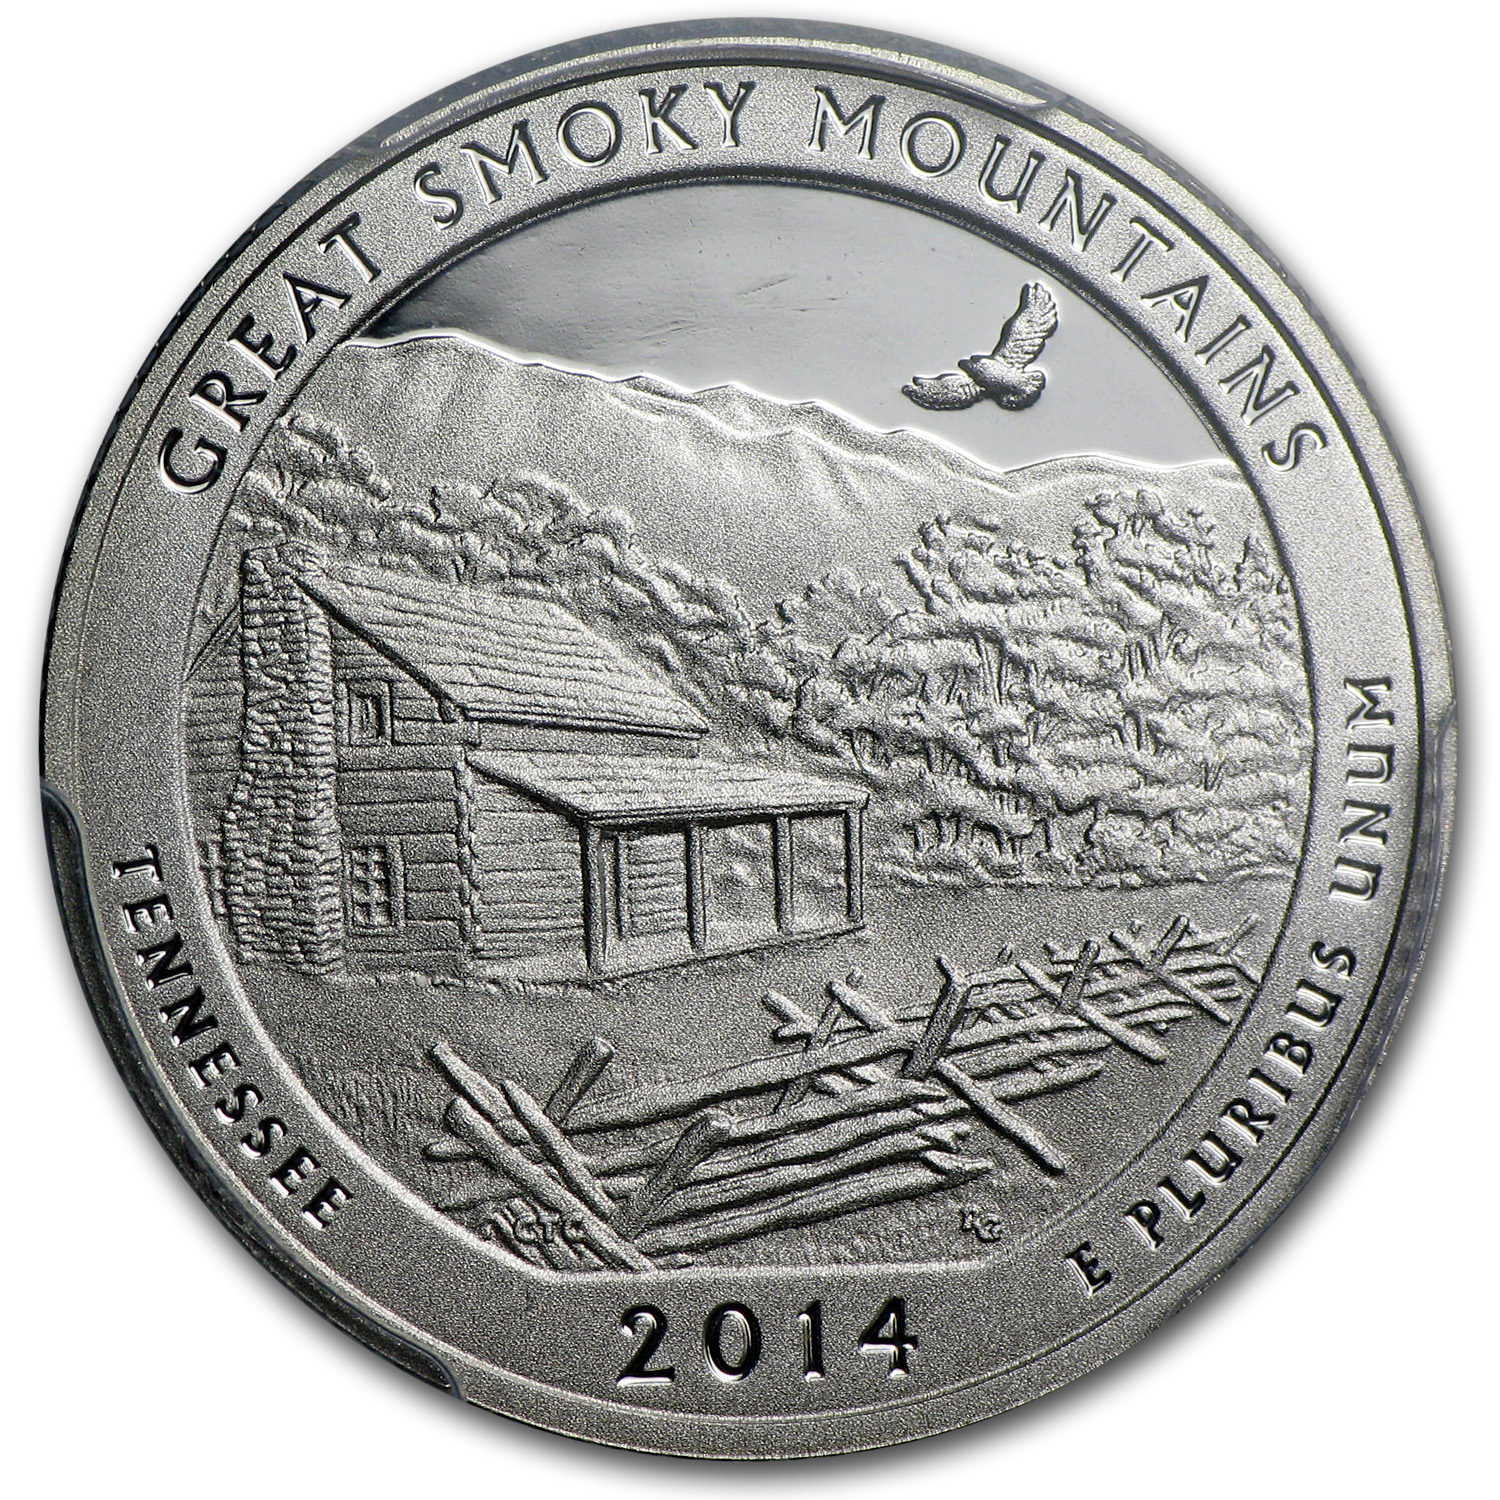 2014-S Silver Proof Quarter ATB Smoky Mountain PR-69 DCAM (FS)